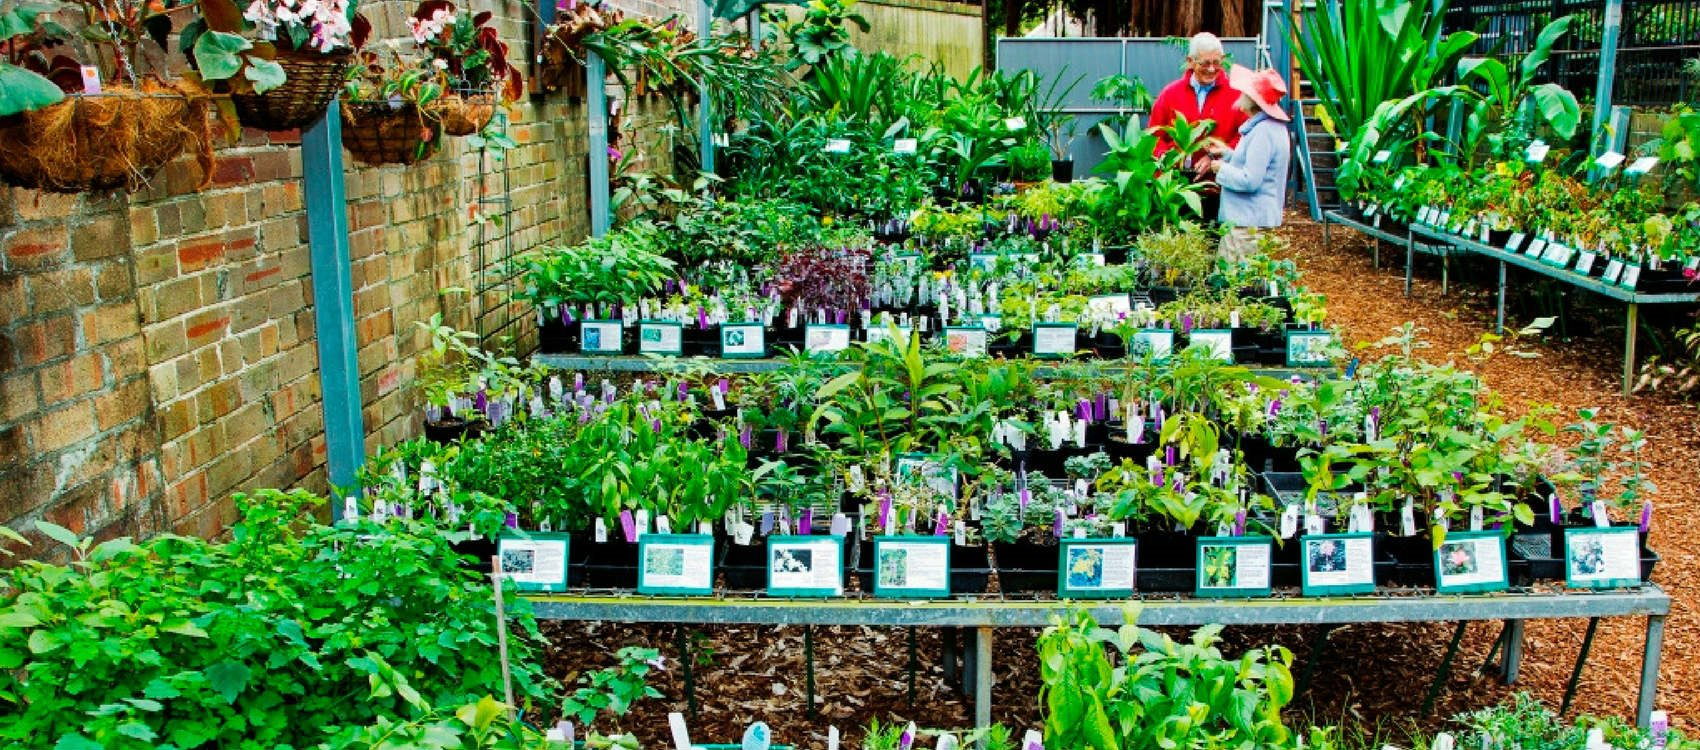 Sat 12 Jan 2019 Home What S On Plants For At The Growing Friends Nursery